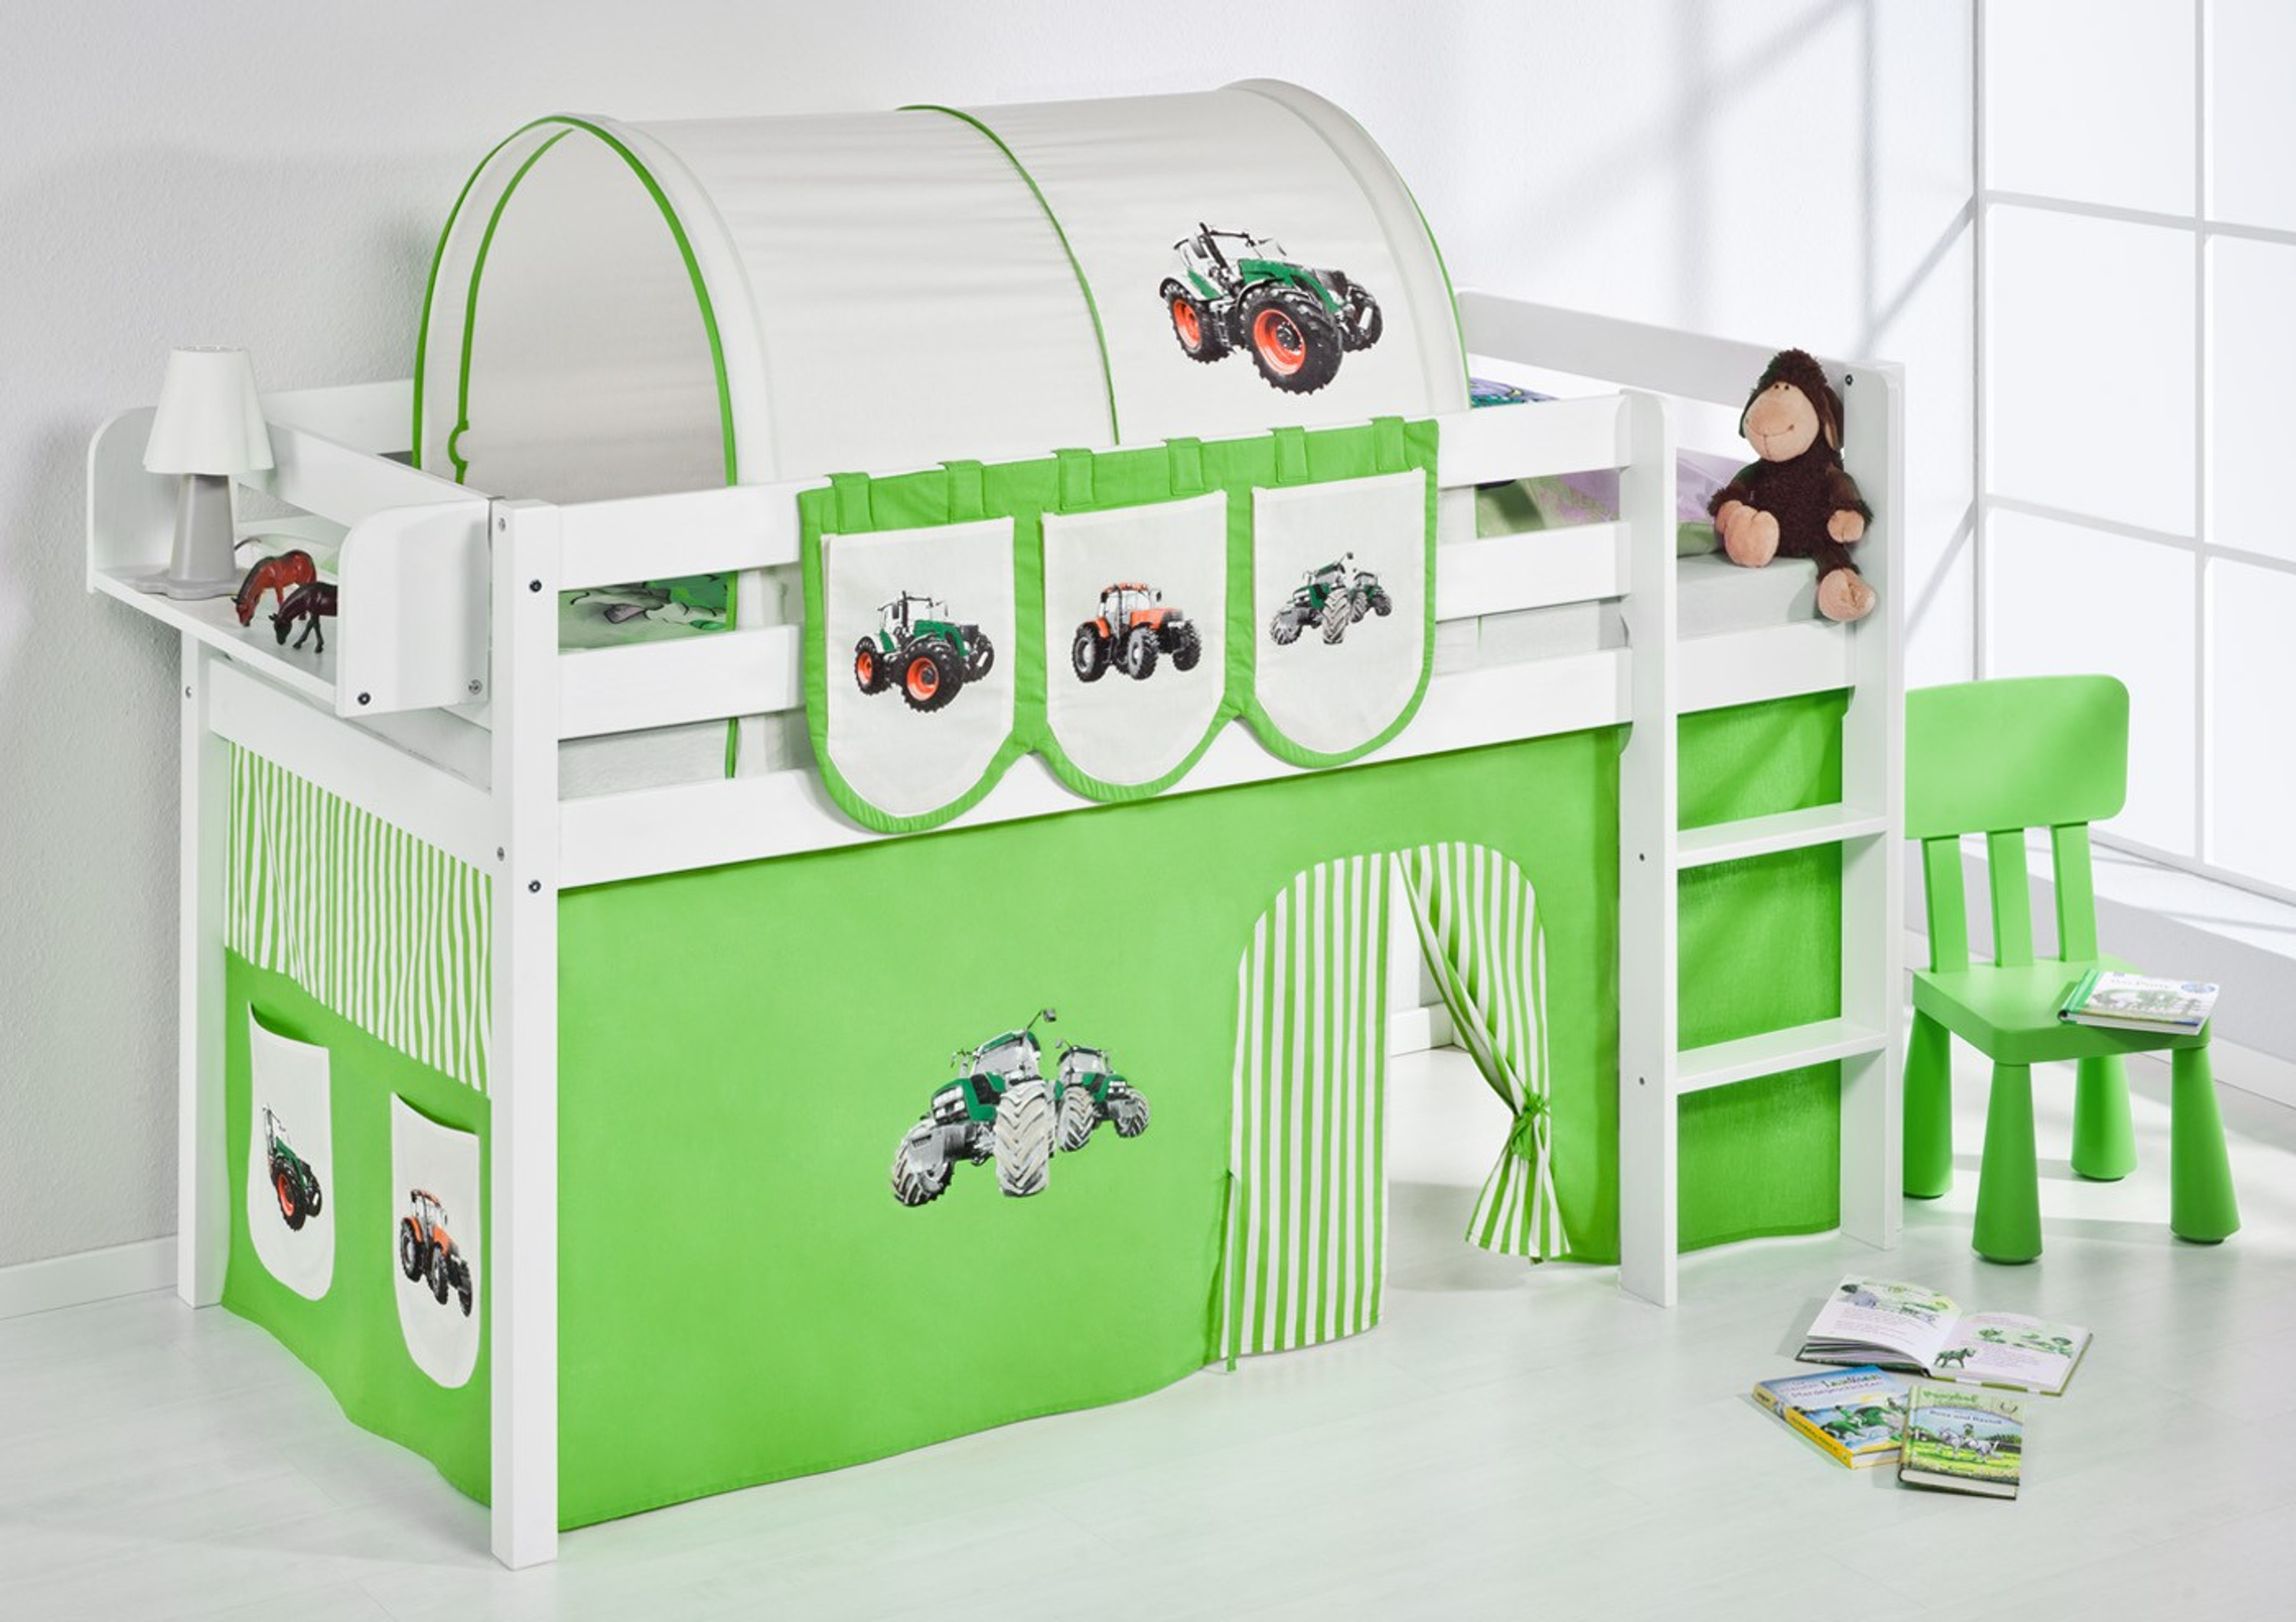 spielbett trecker gr n beige wei mit vorhang jelle m bel baby kinderzimmer hochbetten. Black Bedroom Furniture Sets. Home Design Ideas